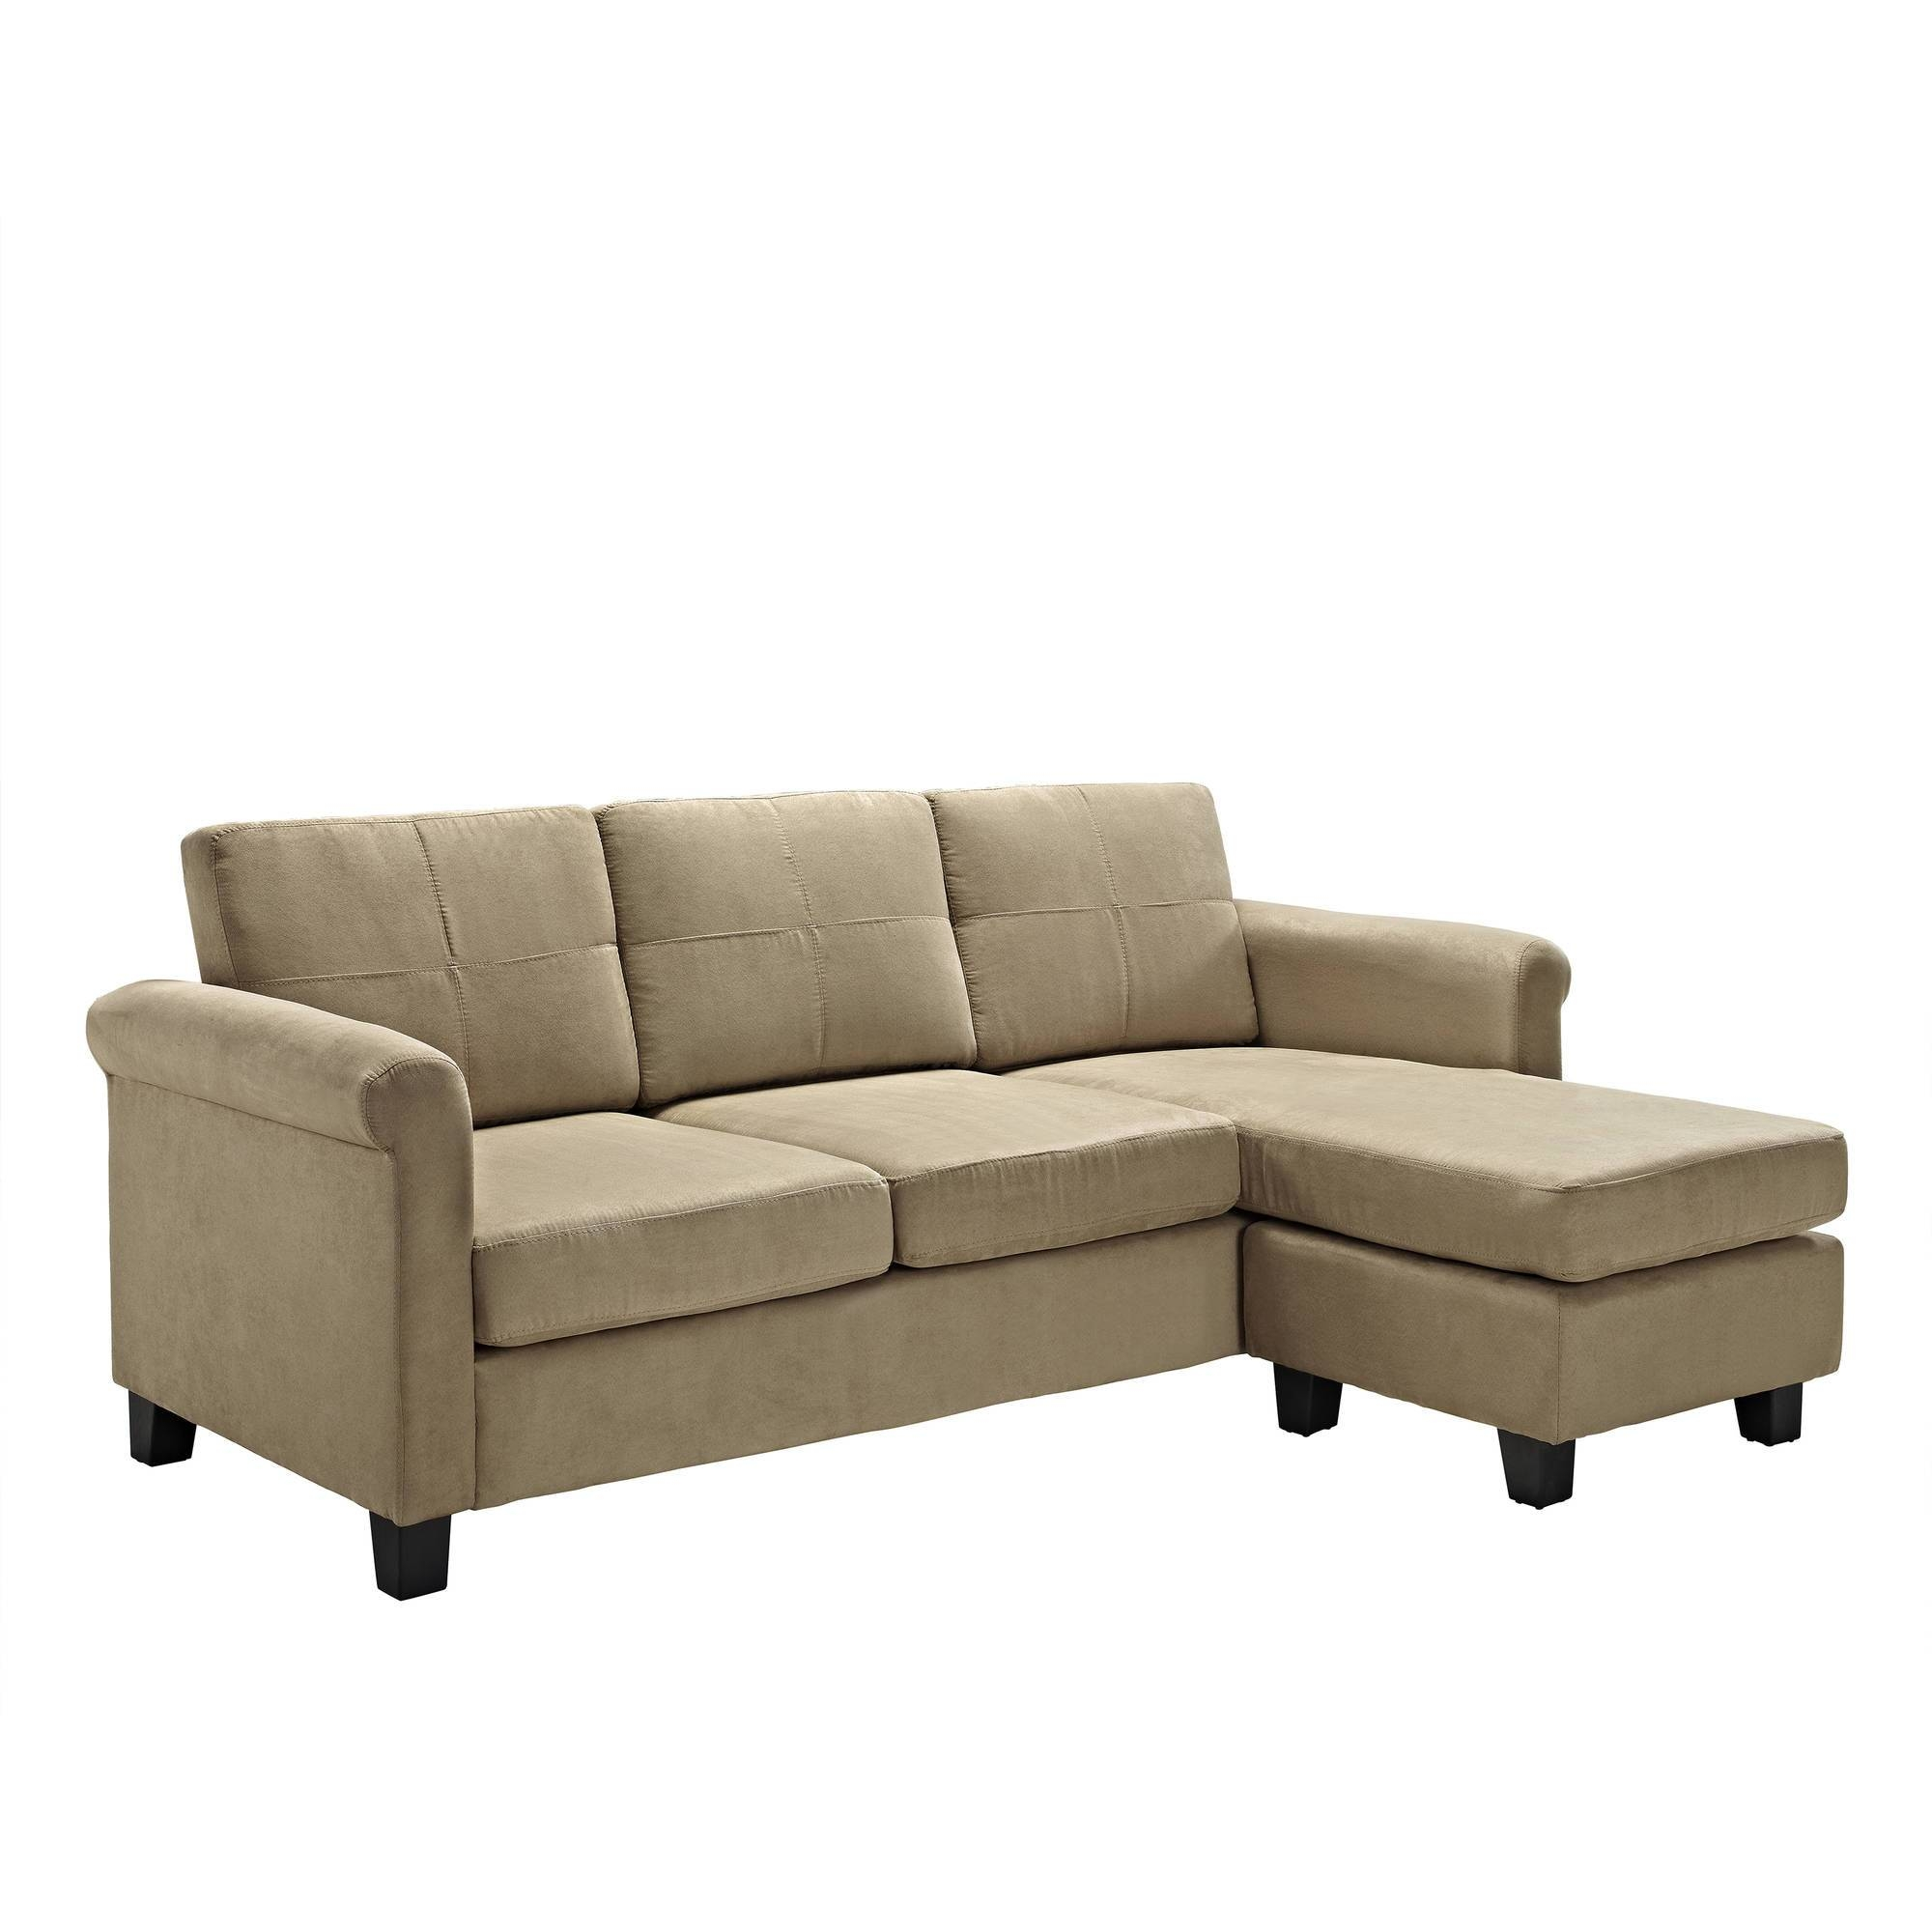 Dorel Living Small Spaces Configurable Sectional Sofa, Multiple inside Small Sectional Sofas for Small Spaces (Image 8 of 25)